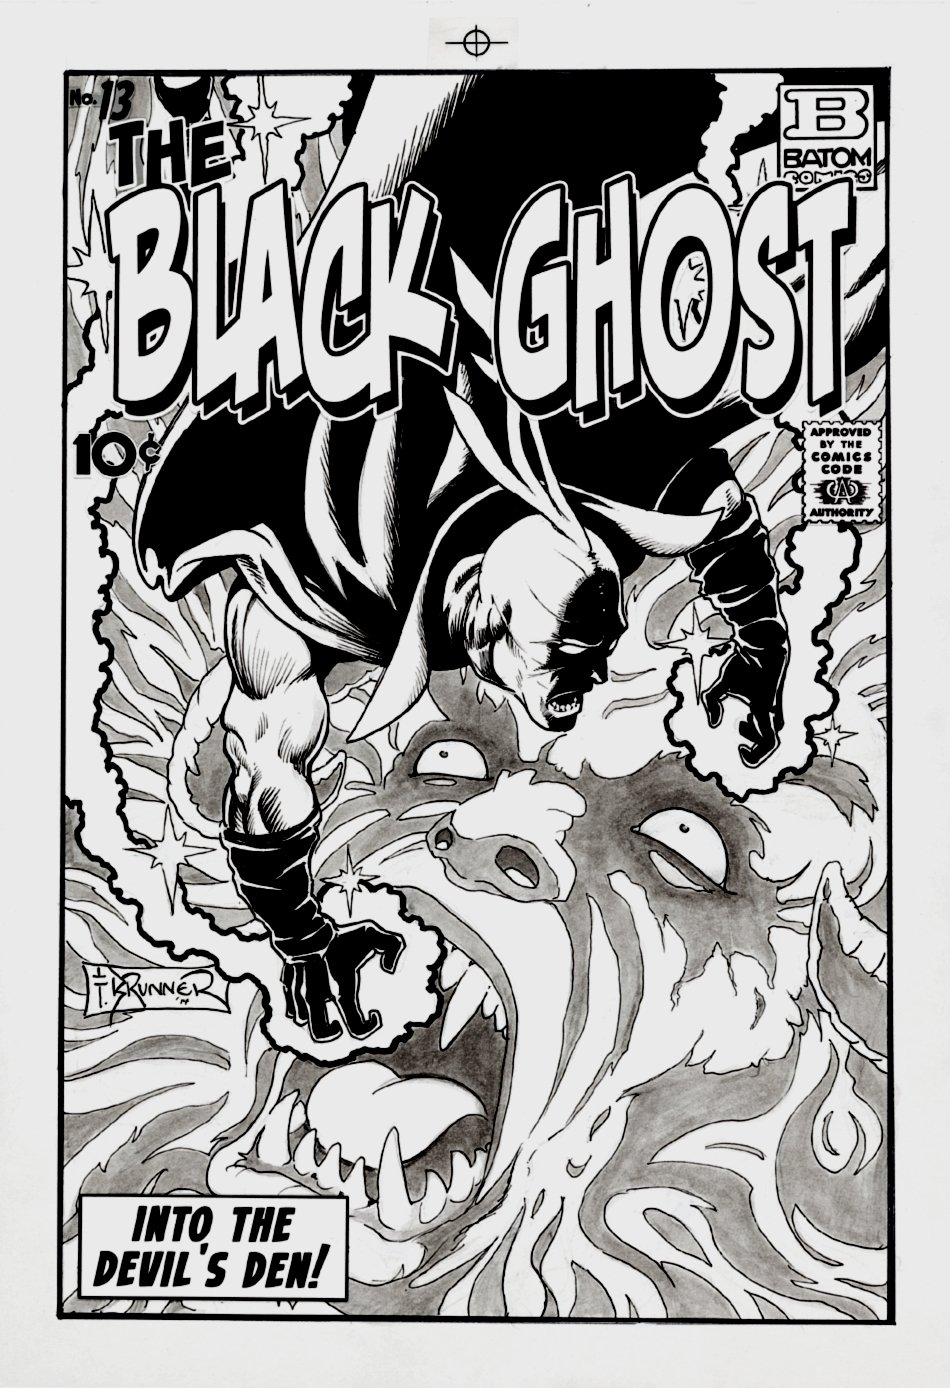 Black Ghost #13 Cover (2014)